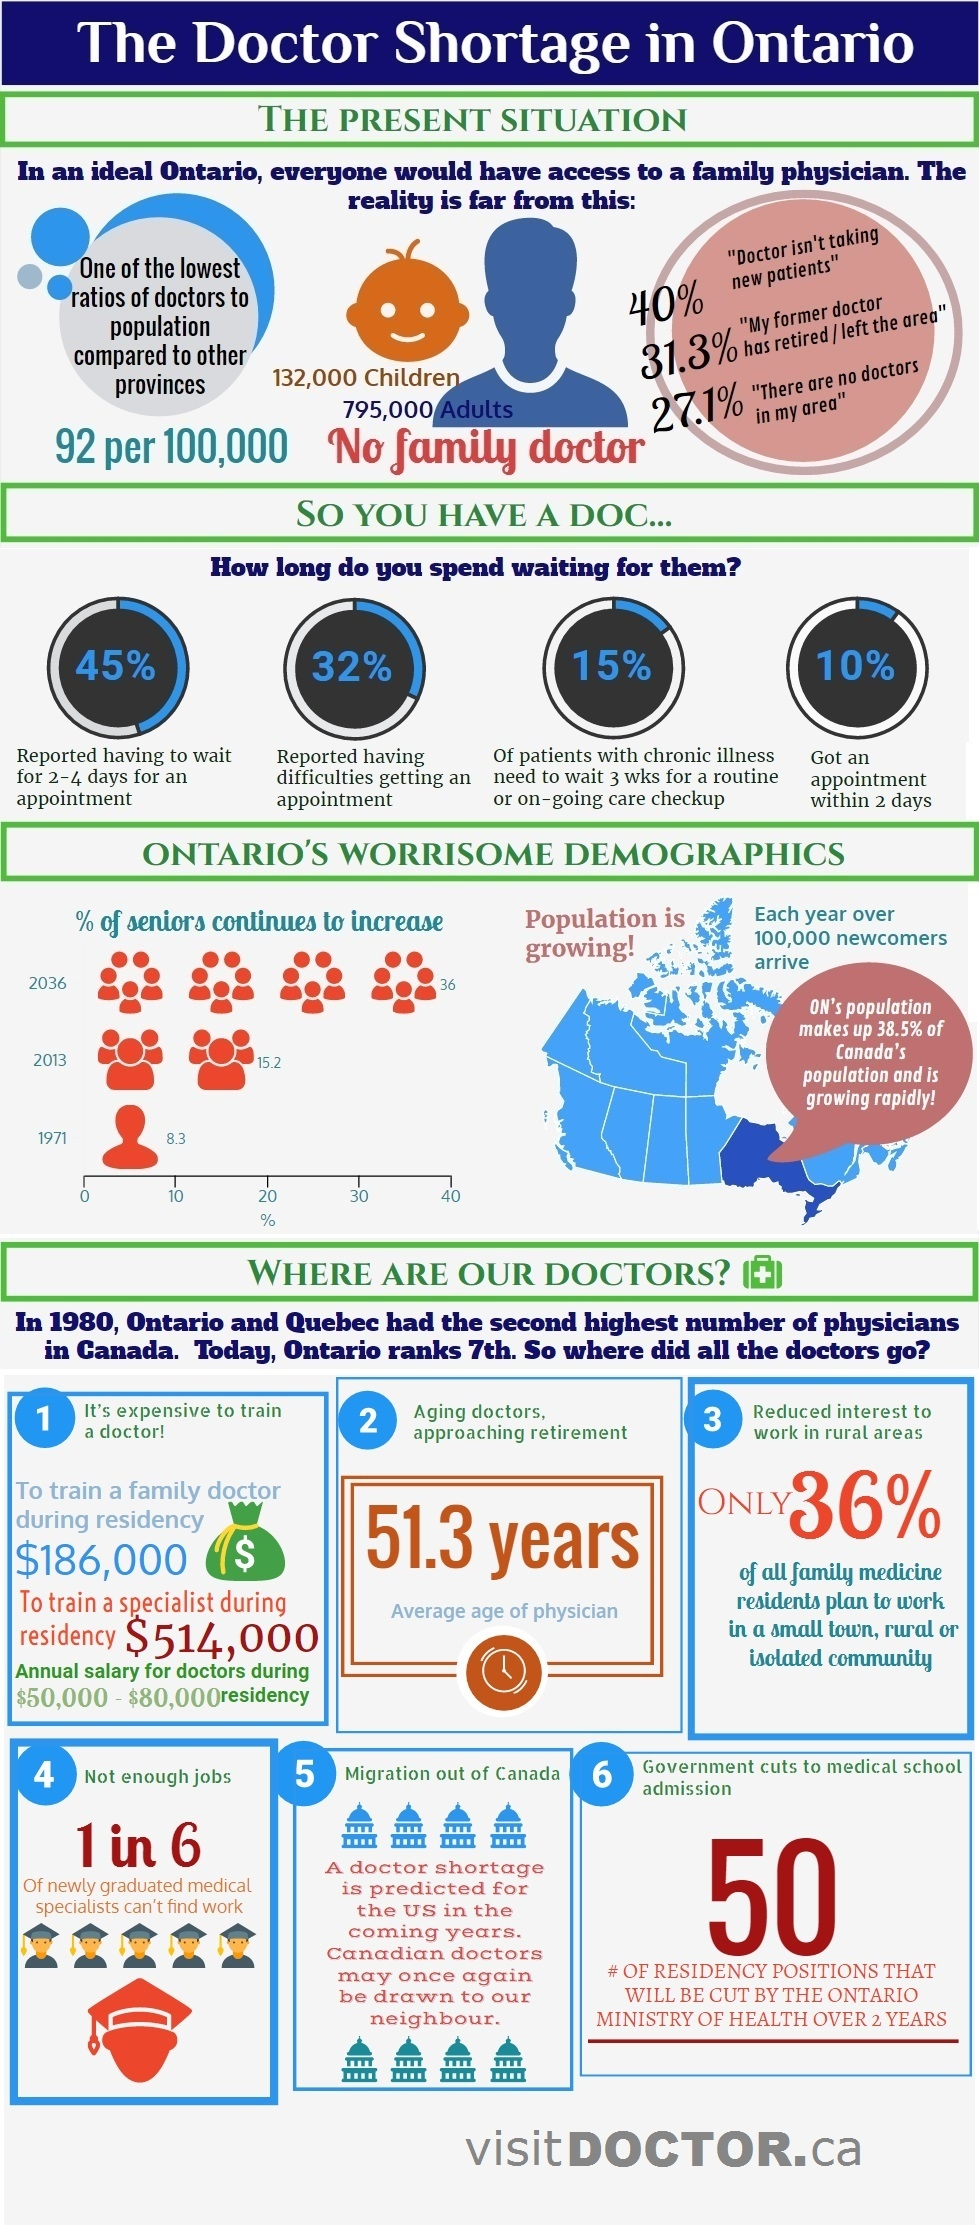 The Doctor Shortage in Ontario